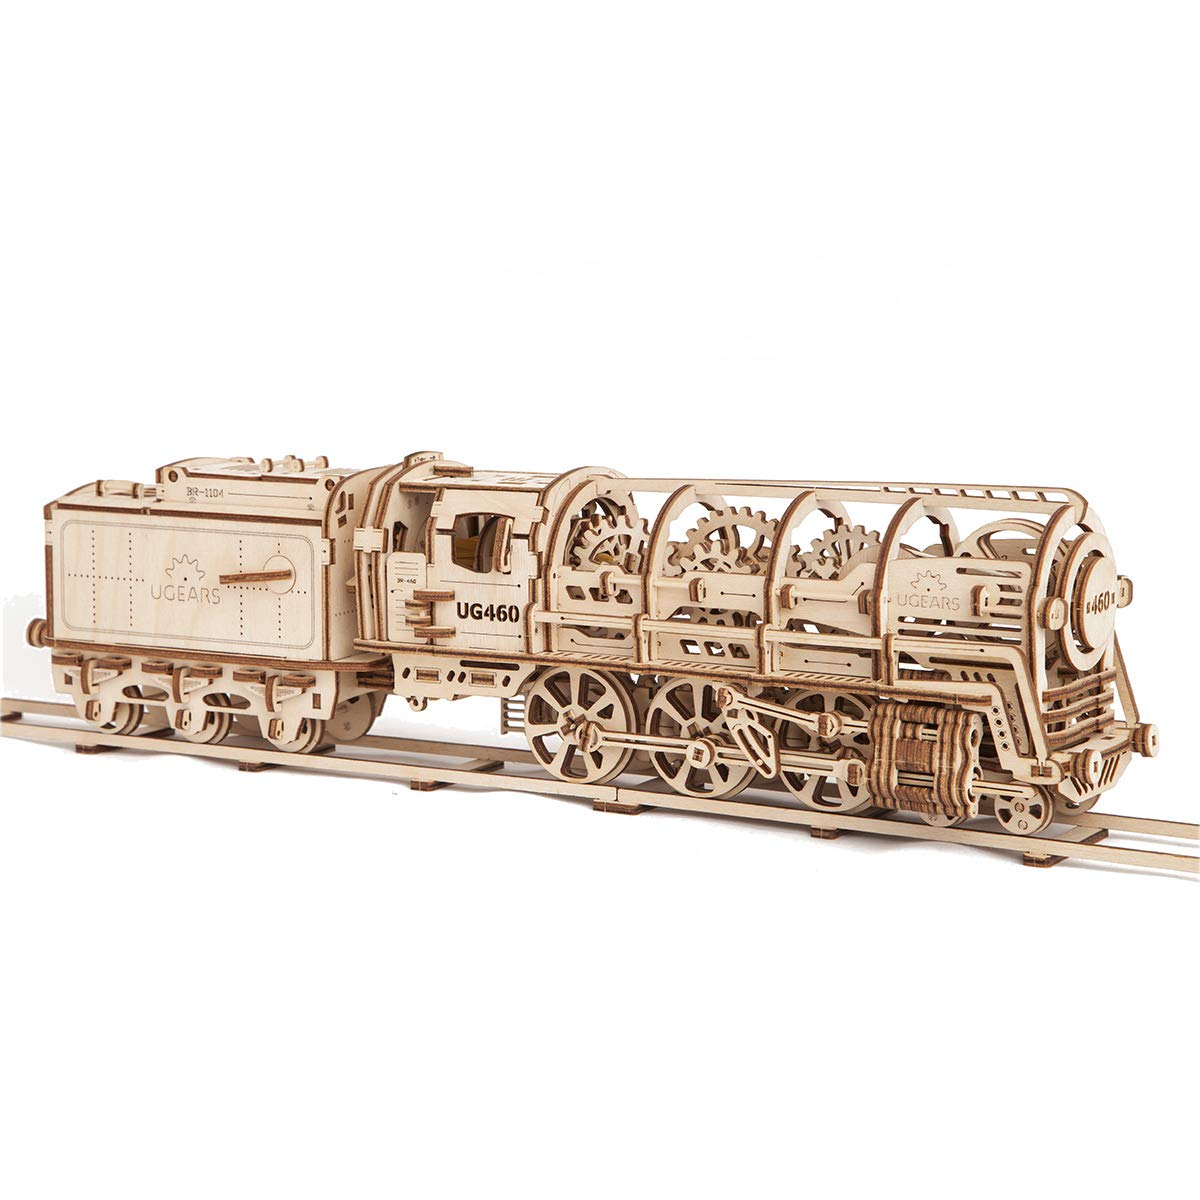 UGears - 460 [並行輸入品] environmentally STEAM LOCOMOTIVE WITH TENDER 3D puzzle unique is a unique product of environmentally friendly wood [並行輸入品] B07518K9G1, セレブbyエンデバー:59711fc6 --- m2cweb.com